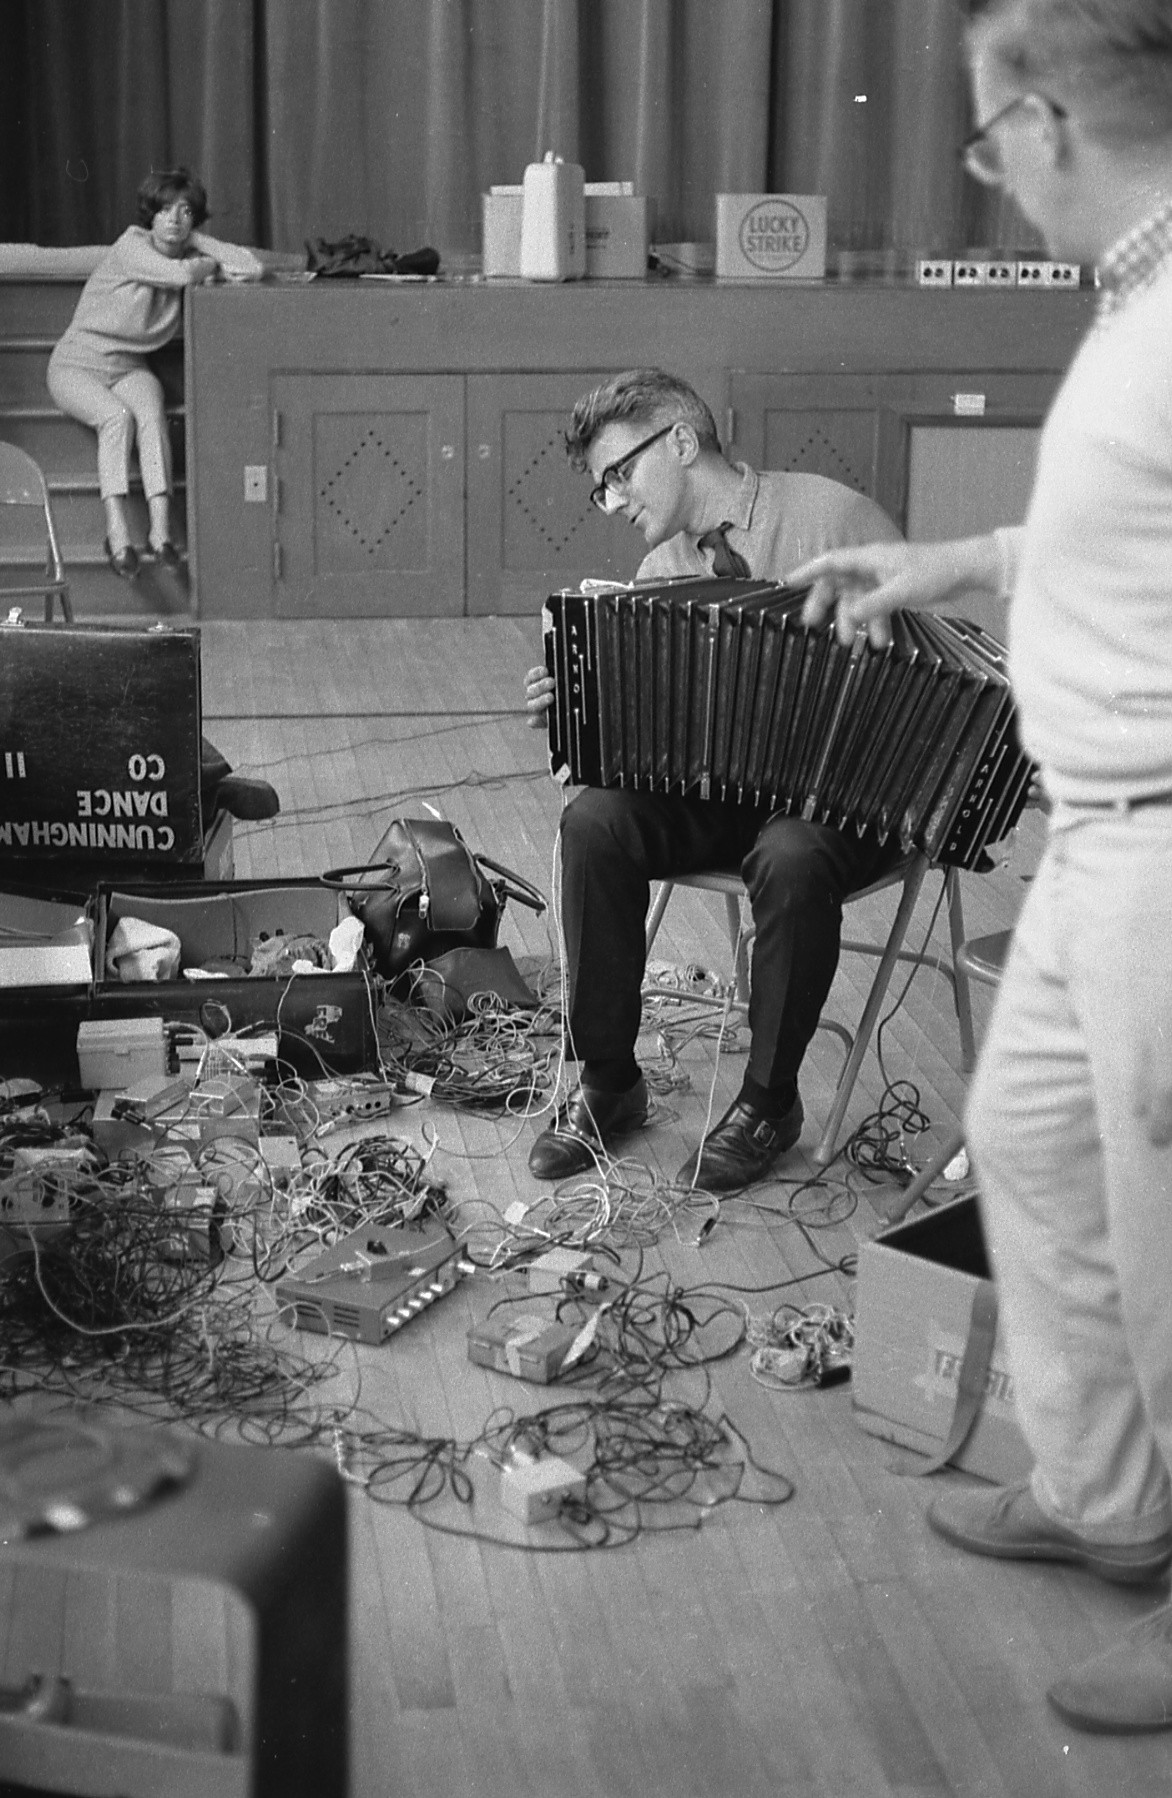 David Tudor's Bandoneon! (a combine), Berkeley Heights School rehearsal, Berkeley Heights, New Jersey, c. 1965